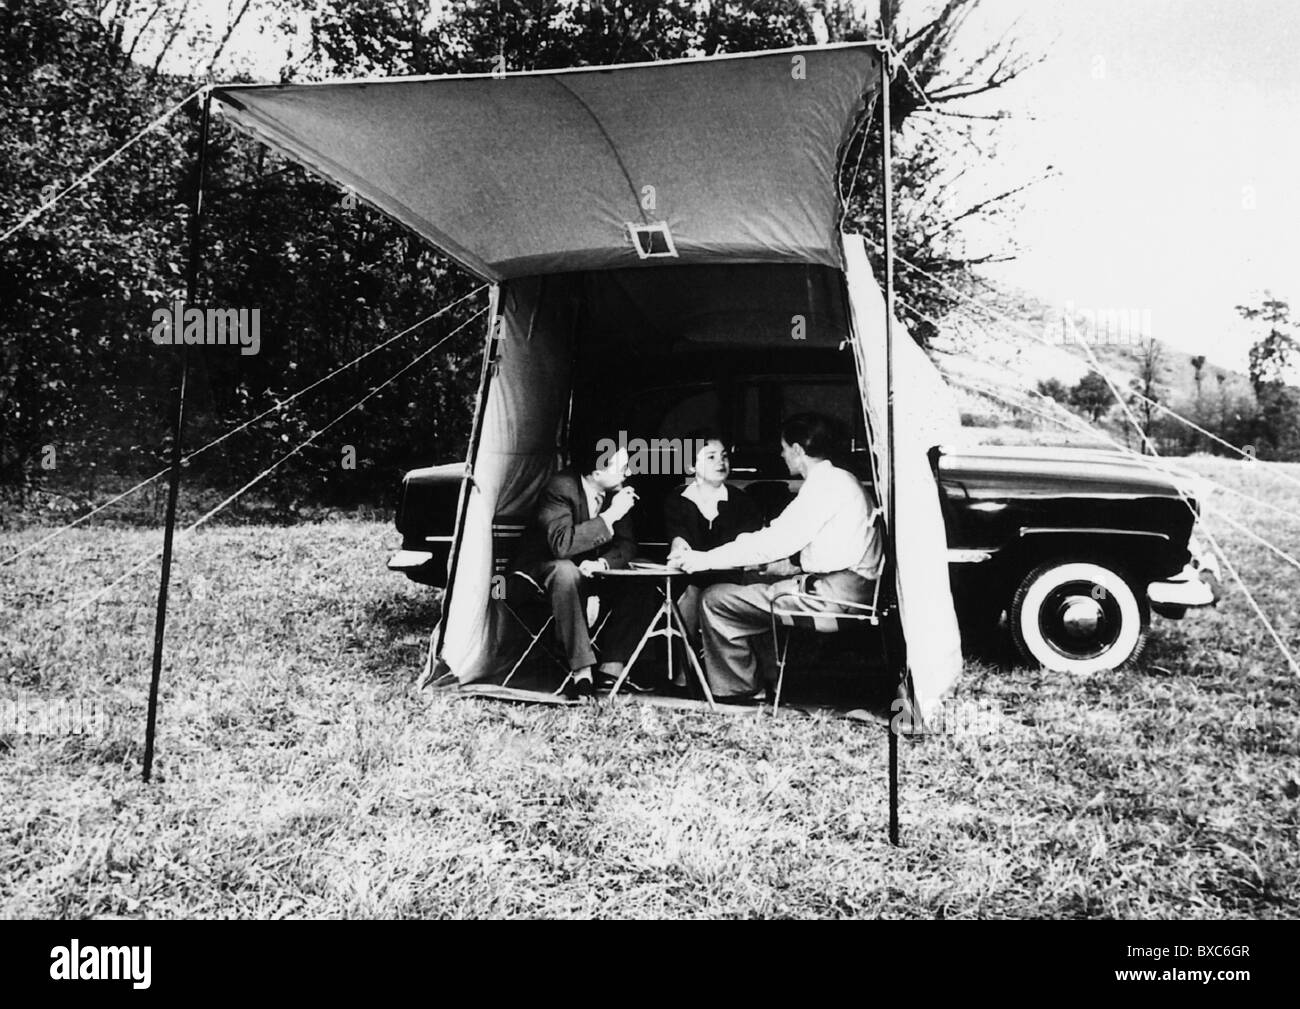 tourism c&ing teenager in a tent 1955 1950s 50s 20th century historic historical awning canopy canopies car cars & tourism camping teenager in a tent 1955 1950s 50s 20th ...